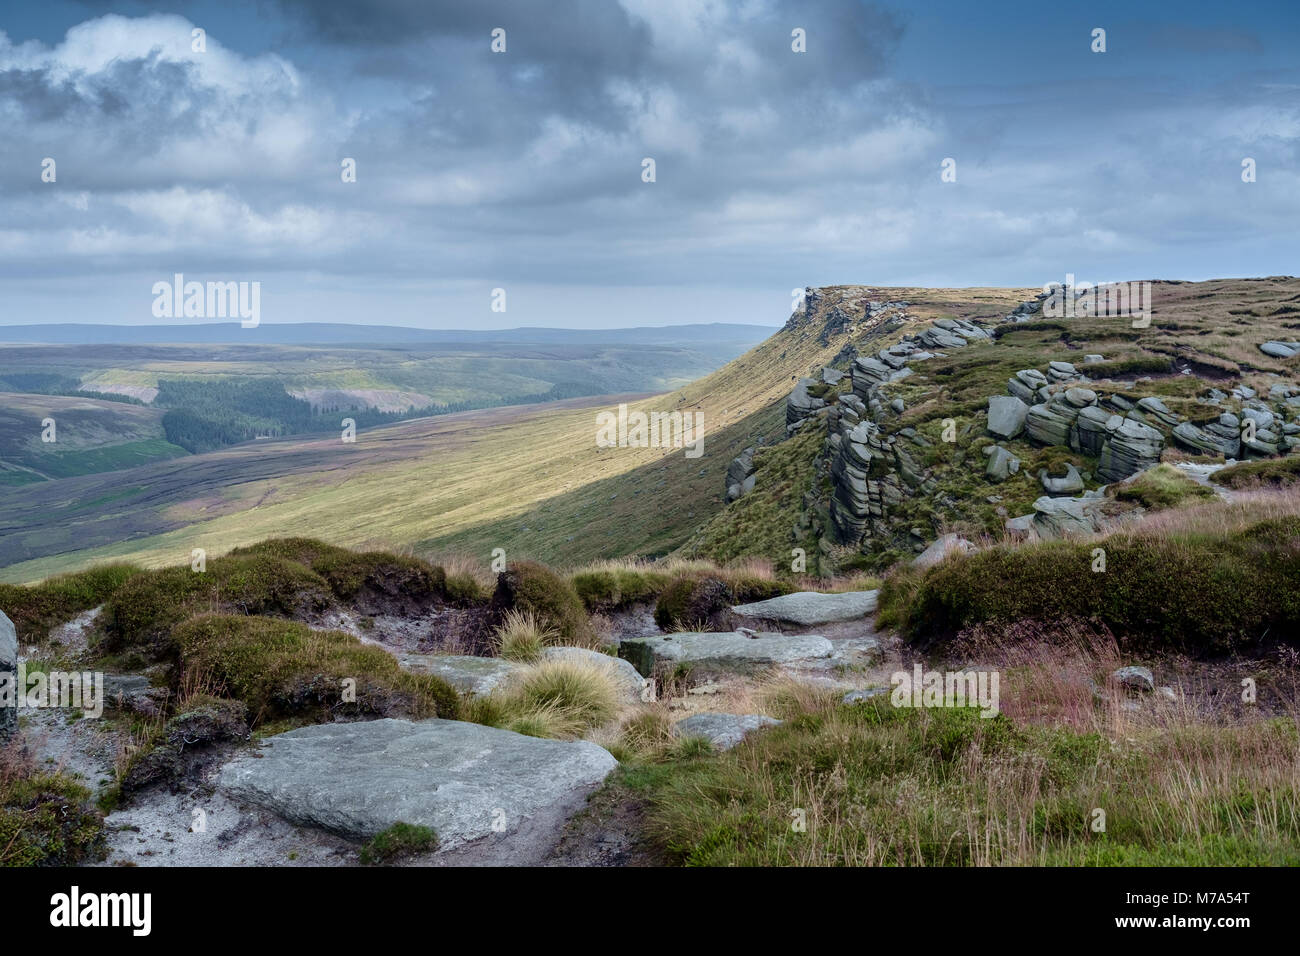 View along the ridge of Kinder Scout in the Peak District National Park, England. - Stock Image